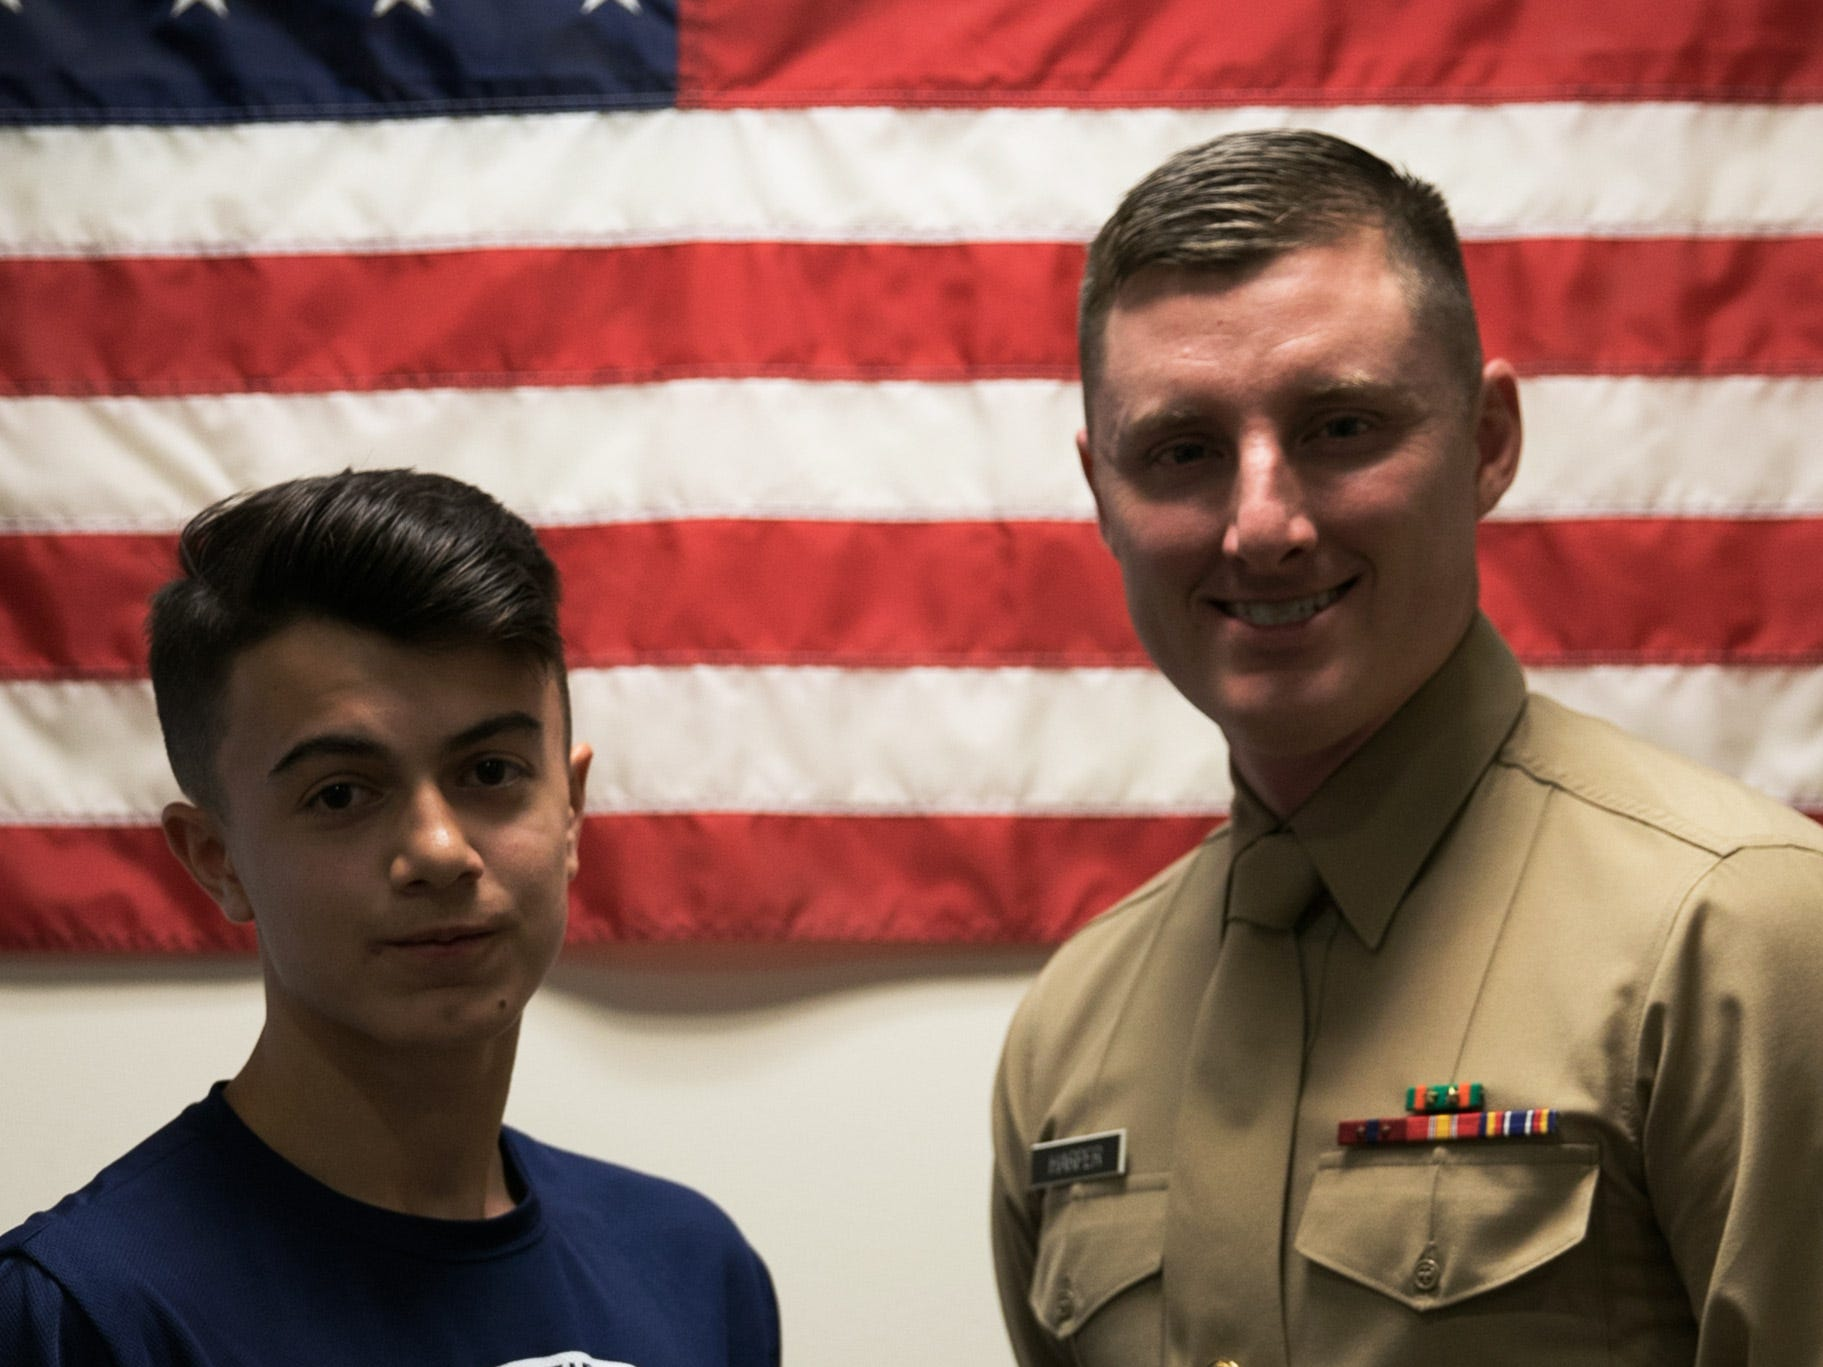 Joseph Campione as a 2018 Semper Fidelis All-American with Staff Sgt. Kenneth Harper, local recruiter for the Somerset area. He attended the Battles Won Academy this past July in Washington, D.C., a prestigious honor afforded to 99 students across America.